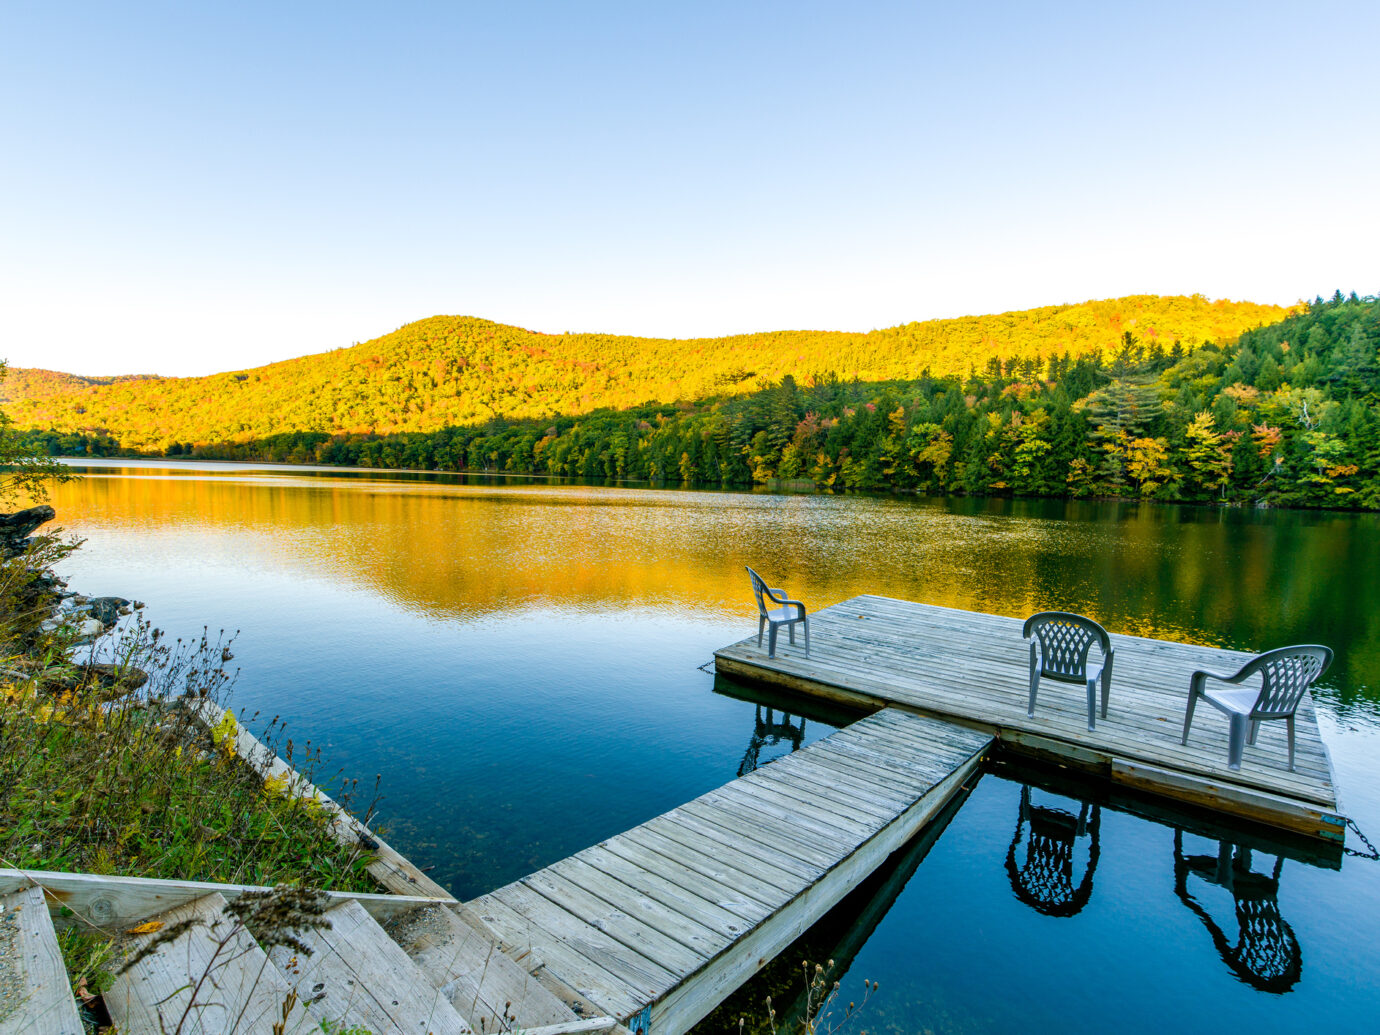 A small deck in the middle of a lake in Vermont. Three chairs are on the deck, inviting people to have a rest